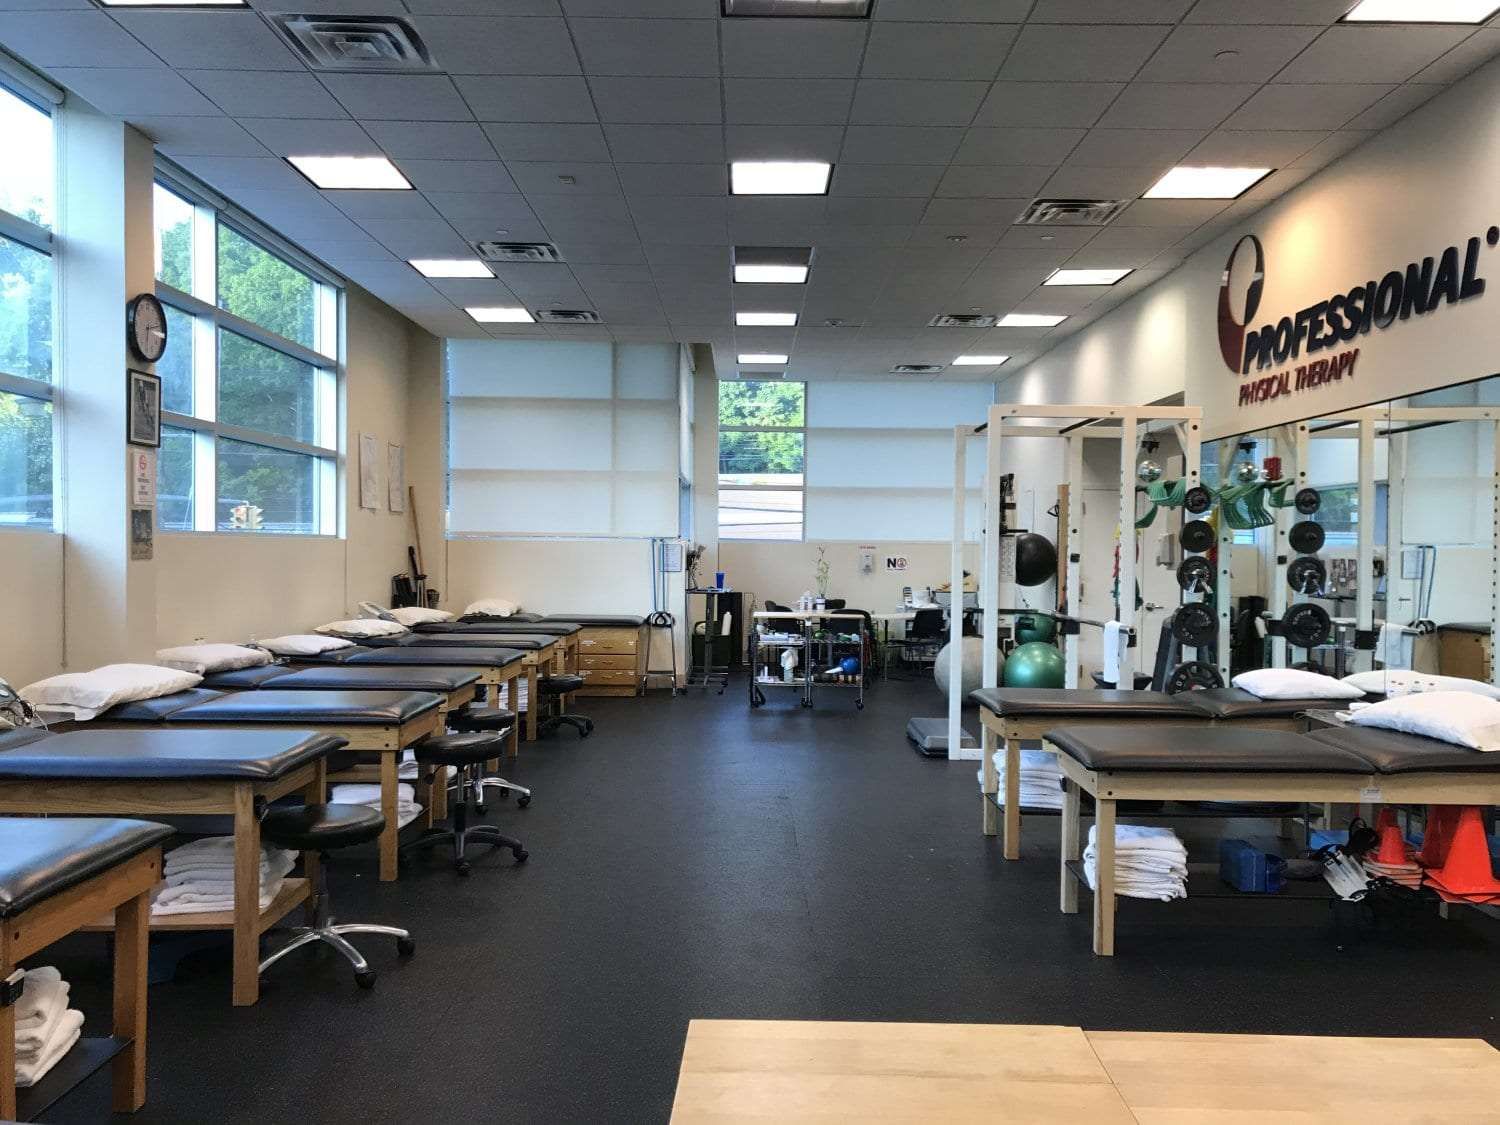 Here is an image of our clean training area at our physical therapy clinic in Great Neck, New York.